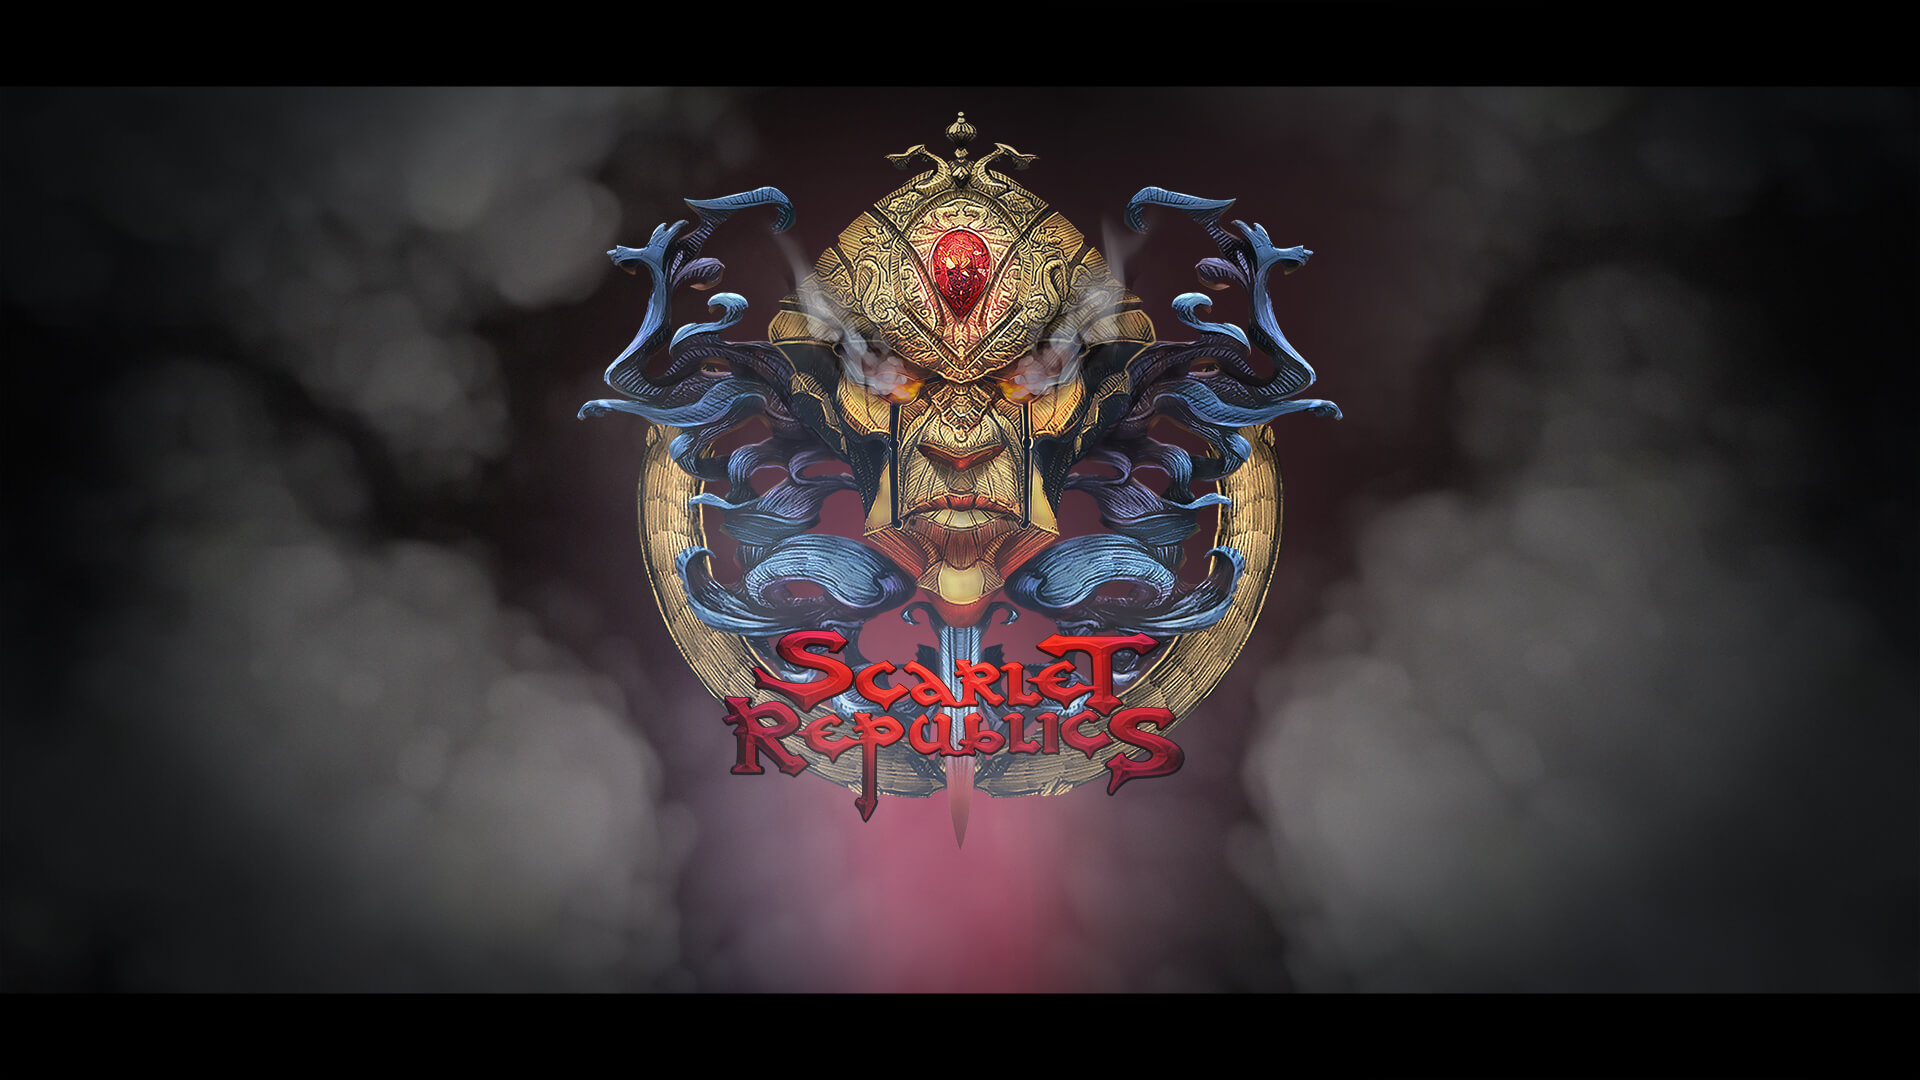 Scarlet Republics Pc RPG